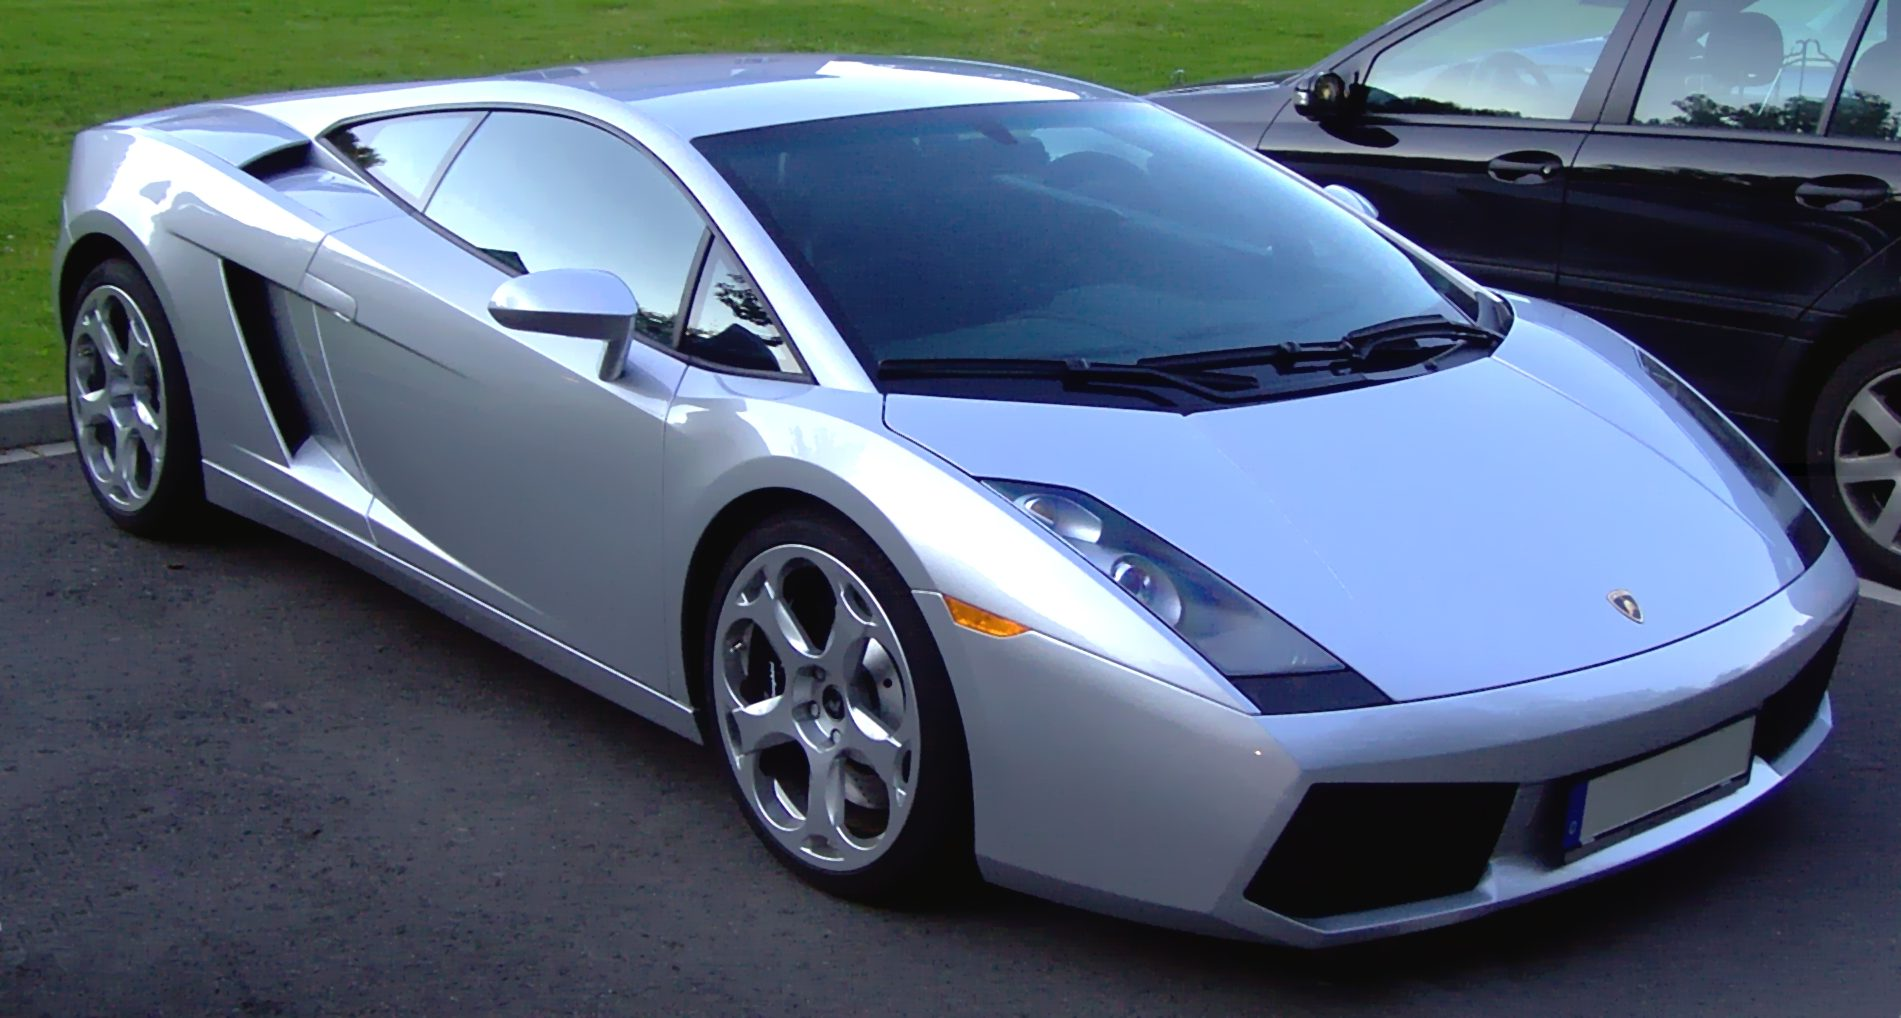 http://upload.wikimedia.org/wikipedia/commons/2/24/Lamborghini_Gallardo_silver.jpg